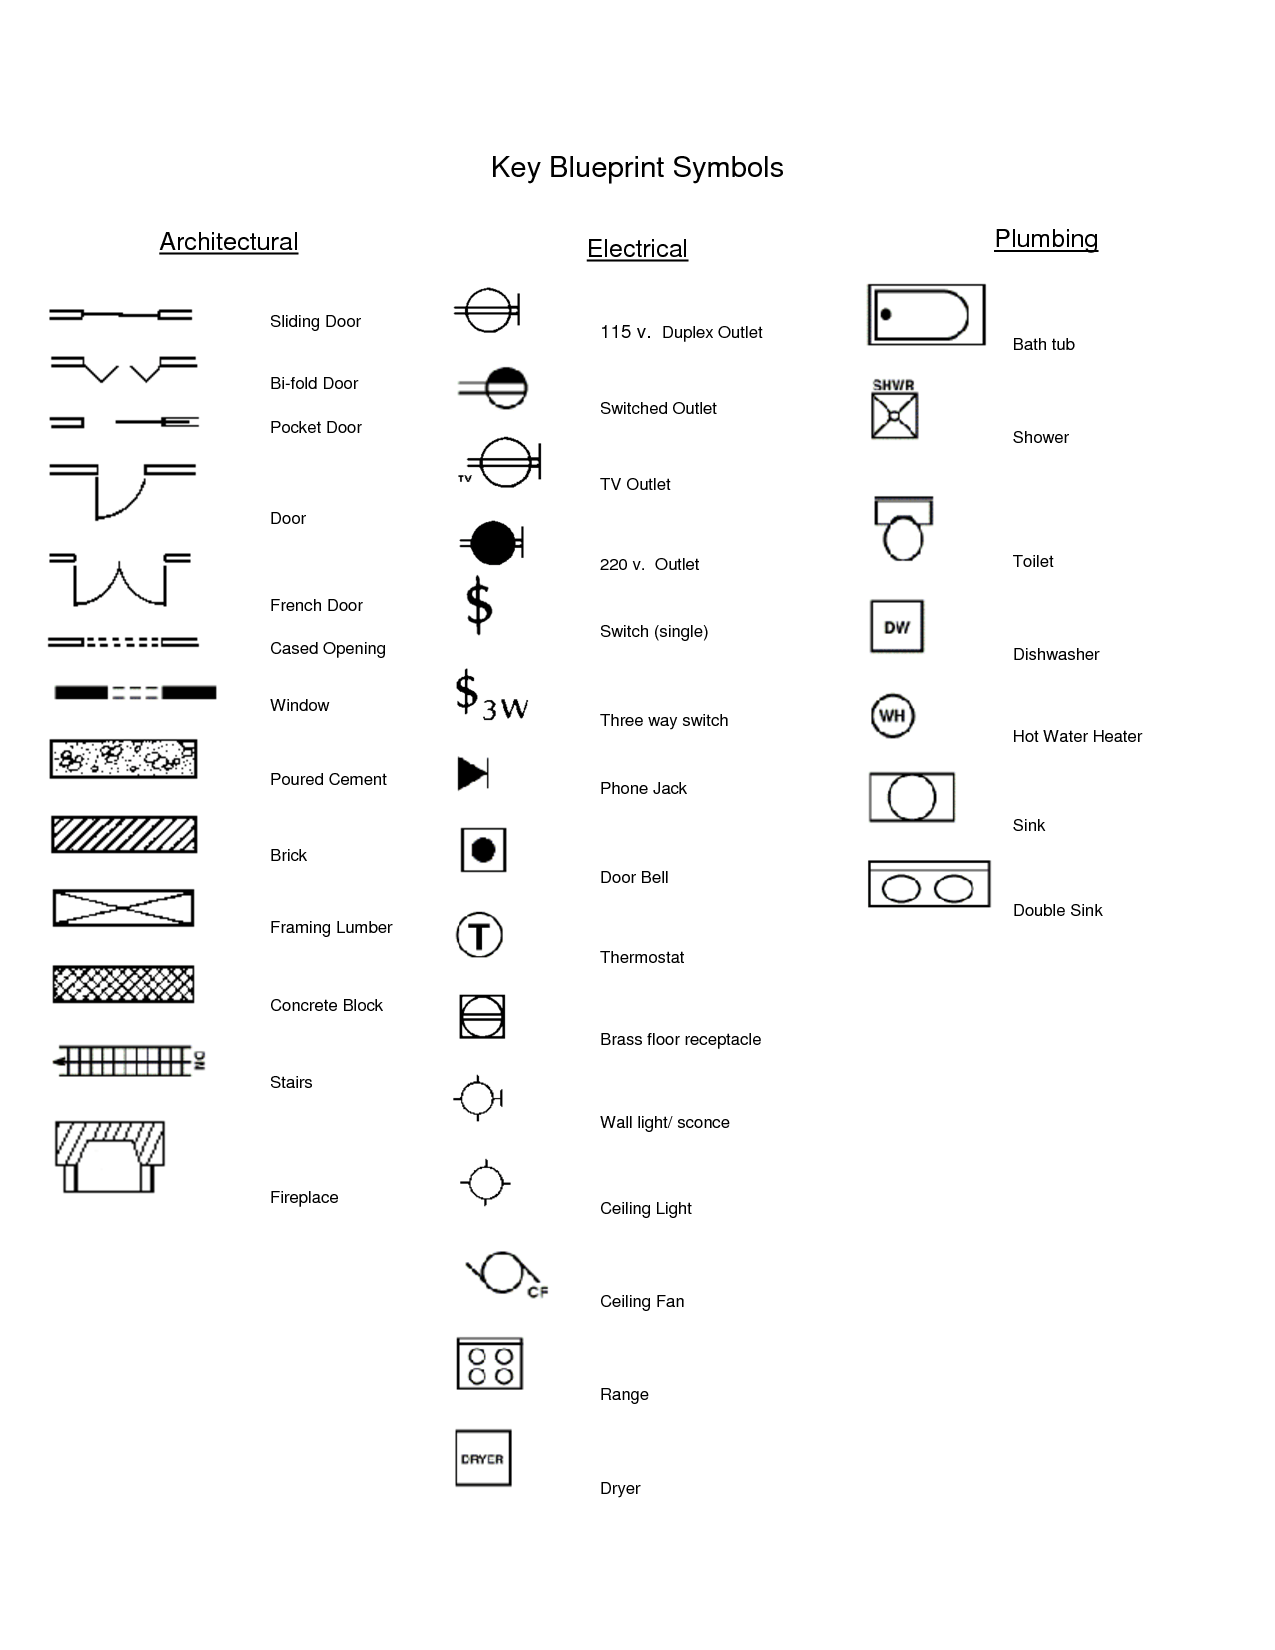 outlet symbol diagram lily printable electrical symbols blueprints brick pinned by www